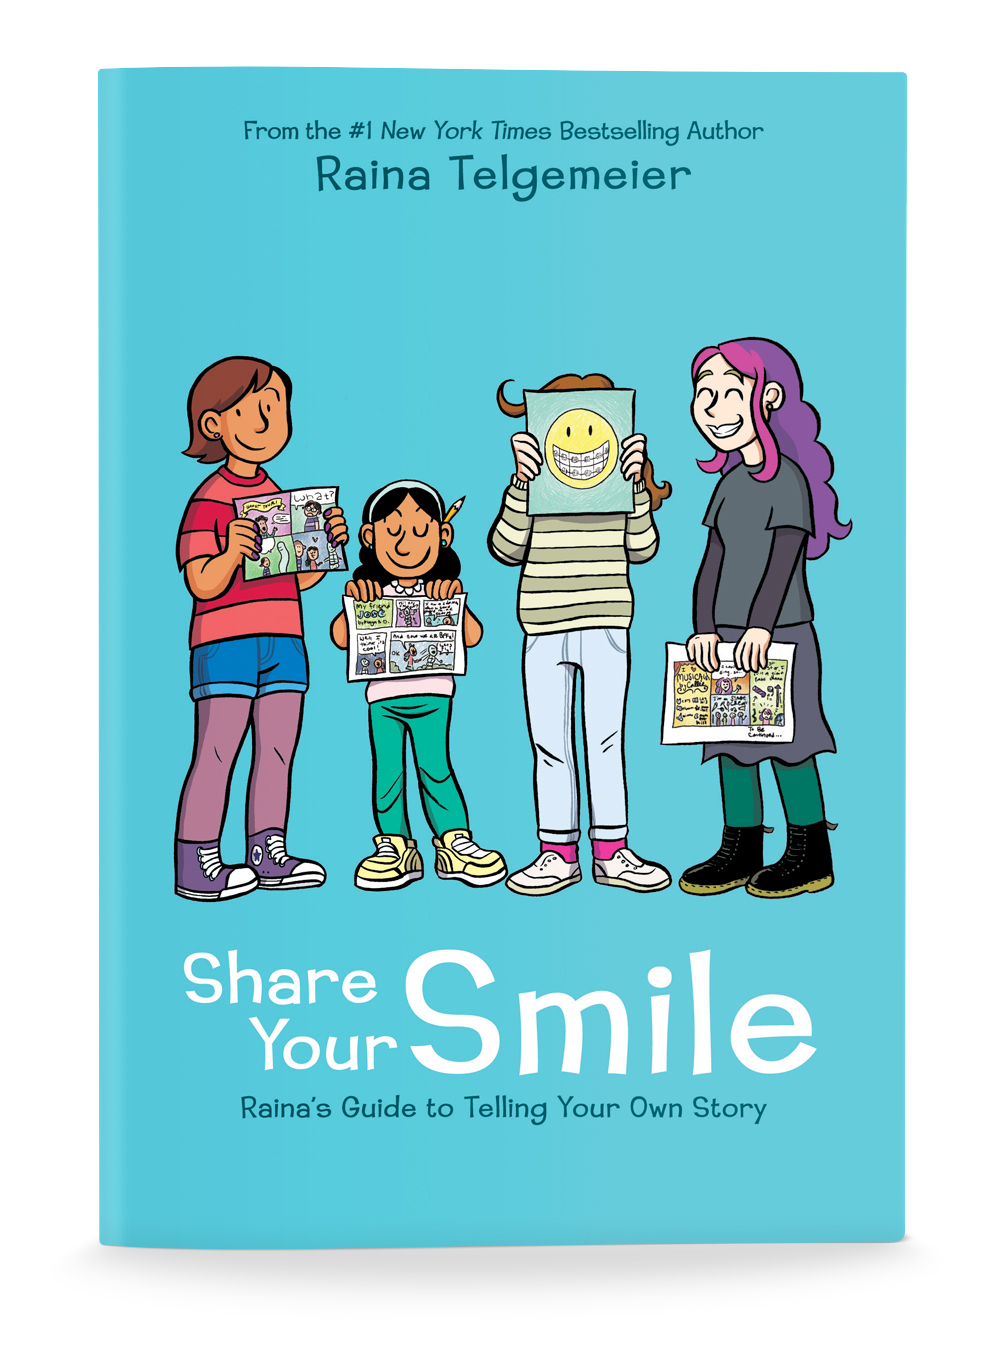 Copy of Share Your Smile